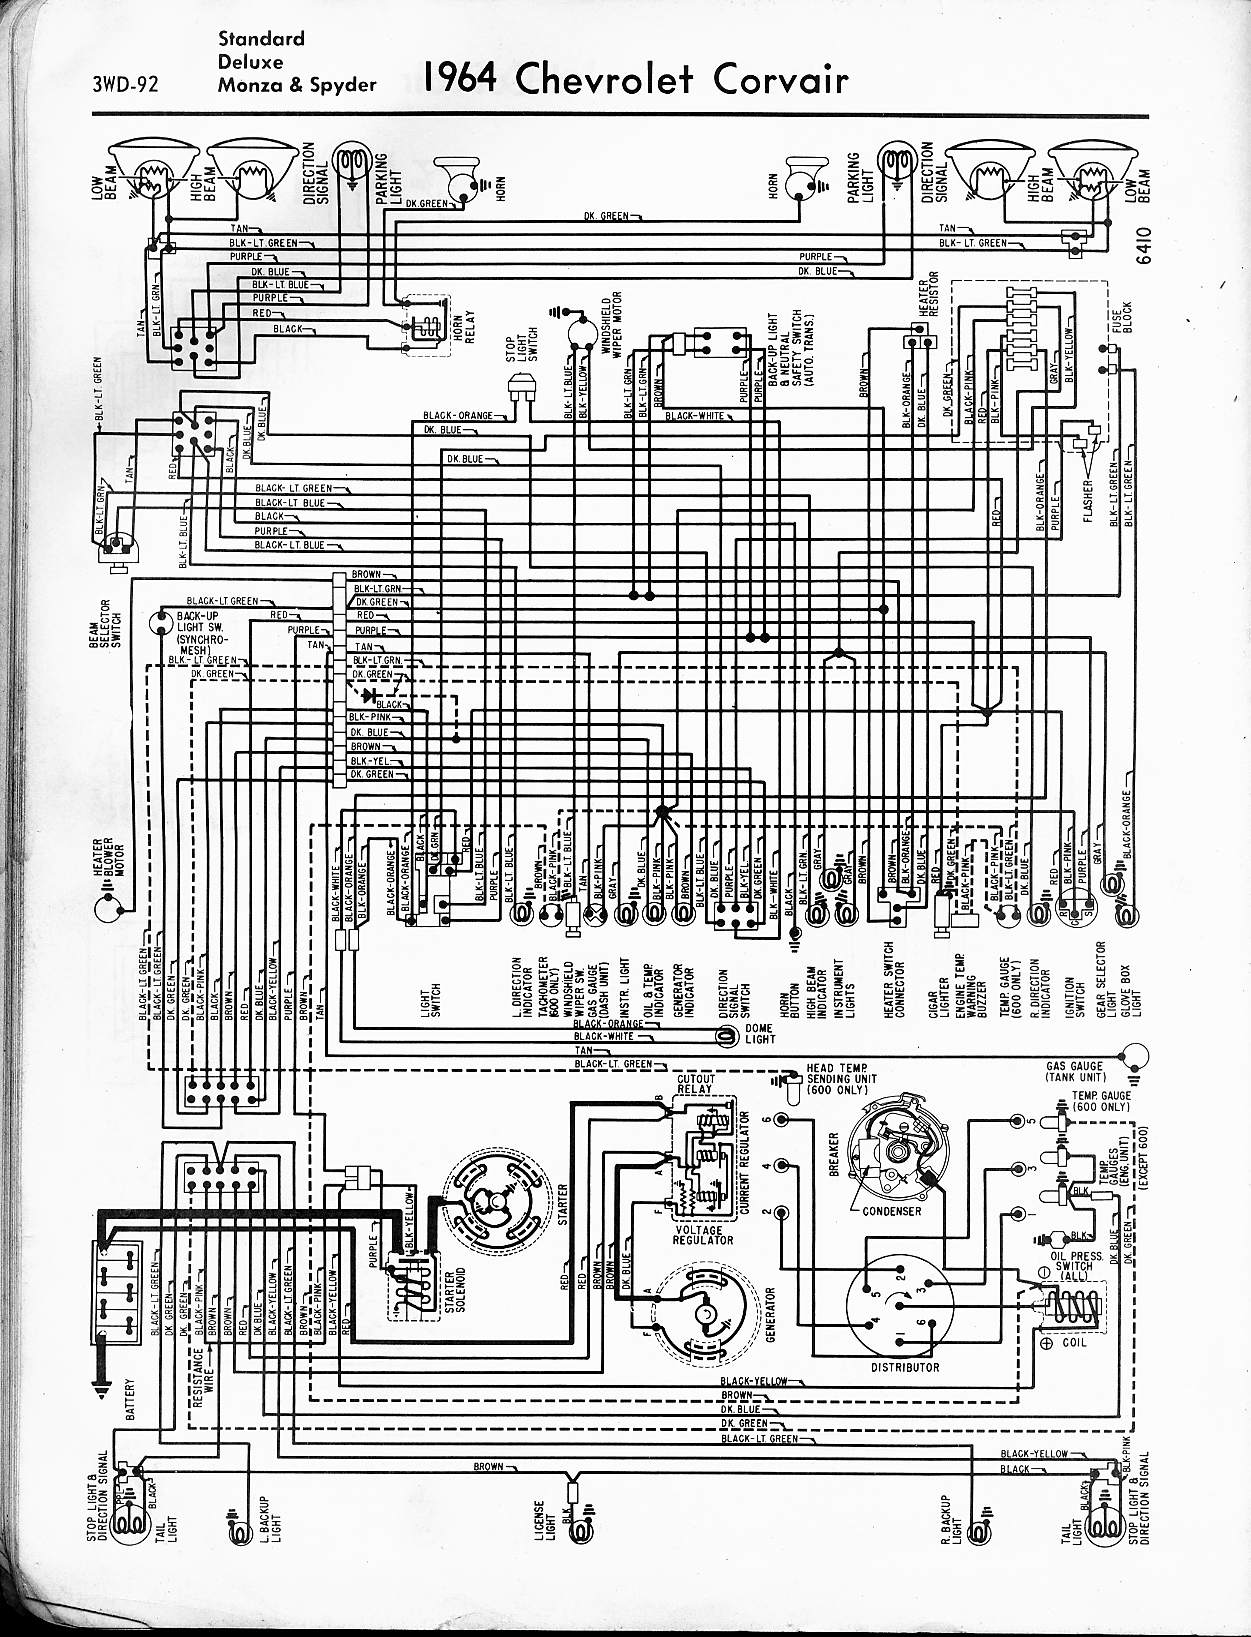 MWireChev64_3WD 092 57 65 chevy wiring diagrams 1966 c10 wiring diagram at virtualis.co